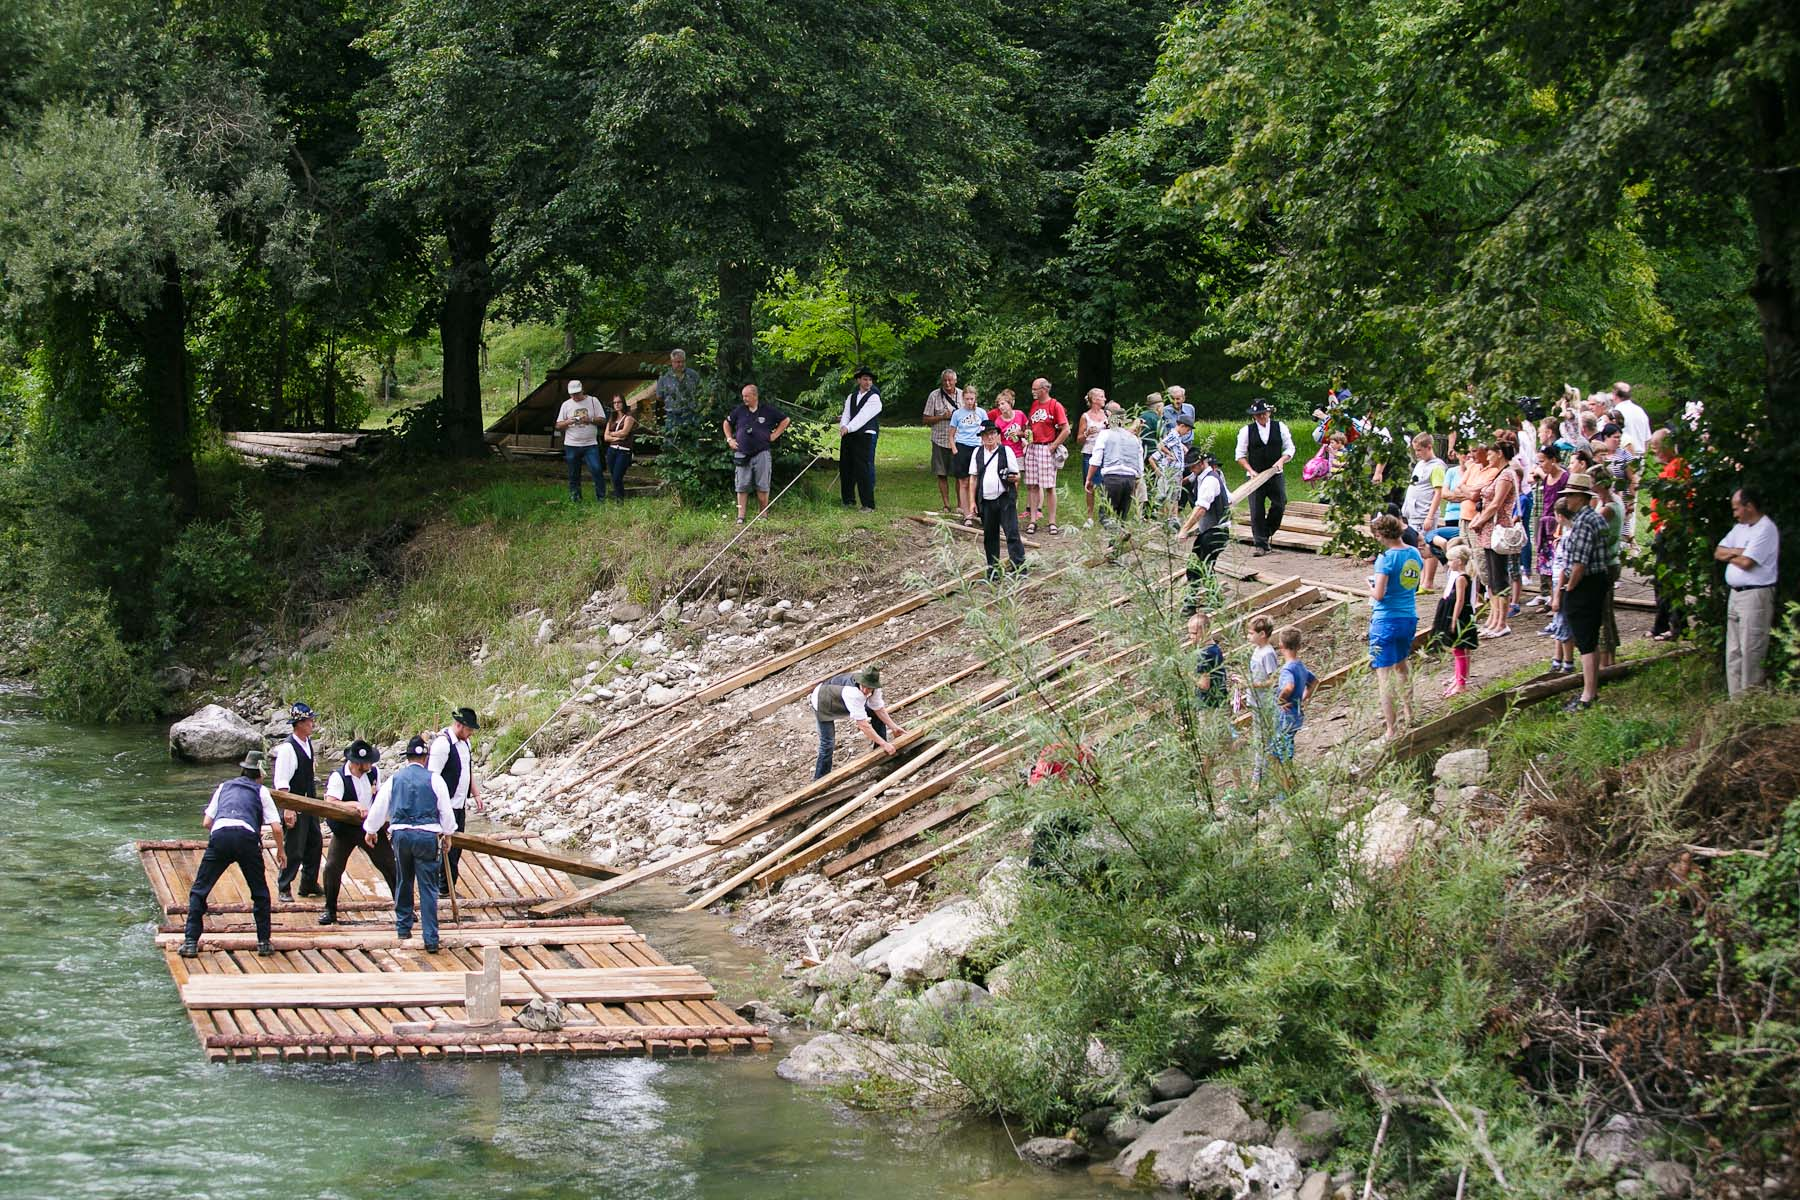 Raftsmen launch a raft into Savinja river during the 55th Raftsmen Ball in Ljubno ob Savinji, Slovenia.